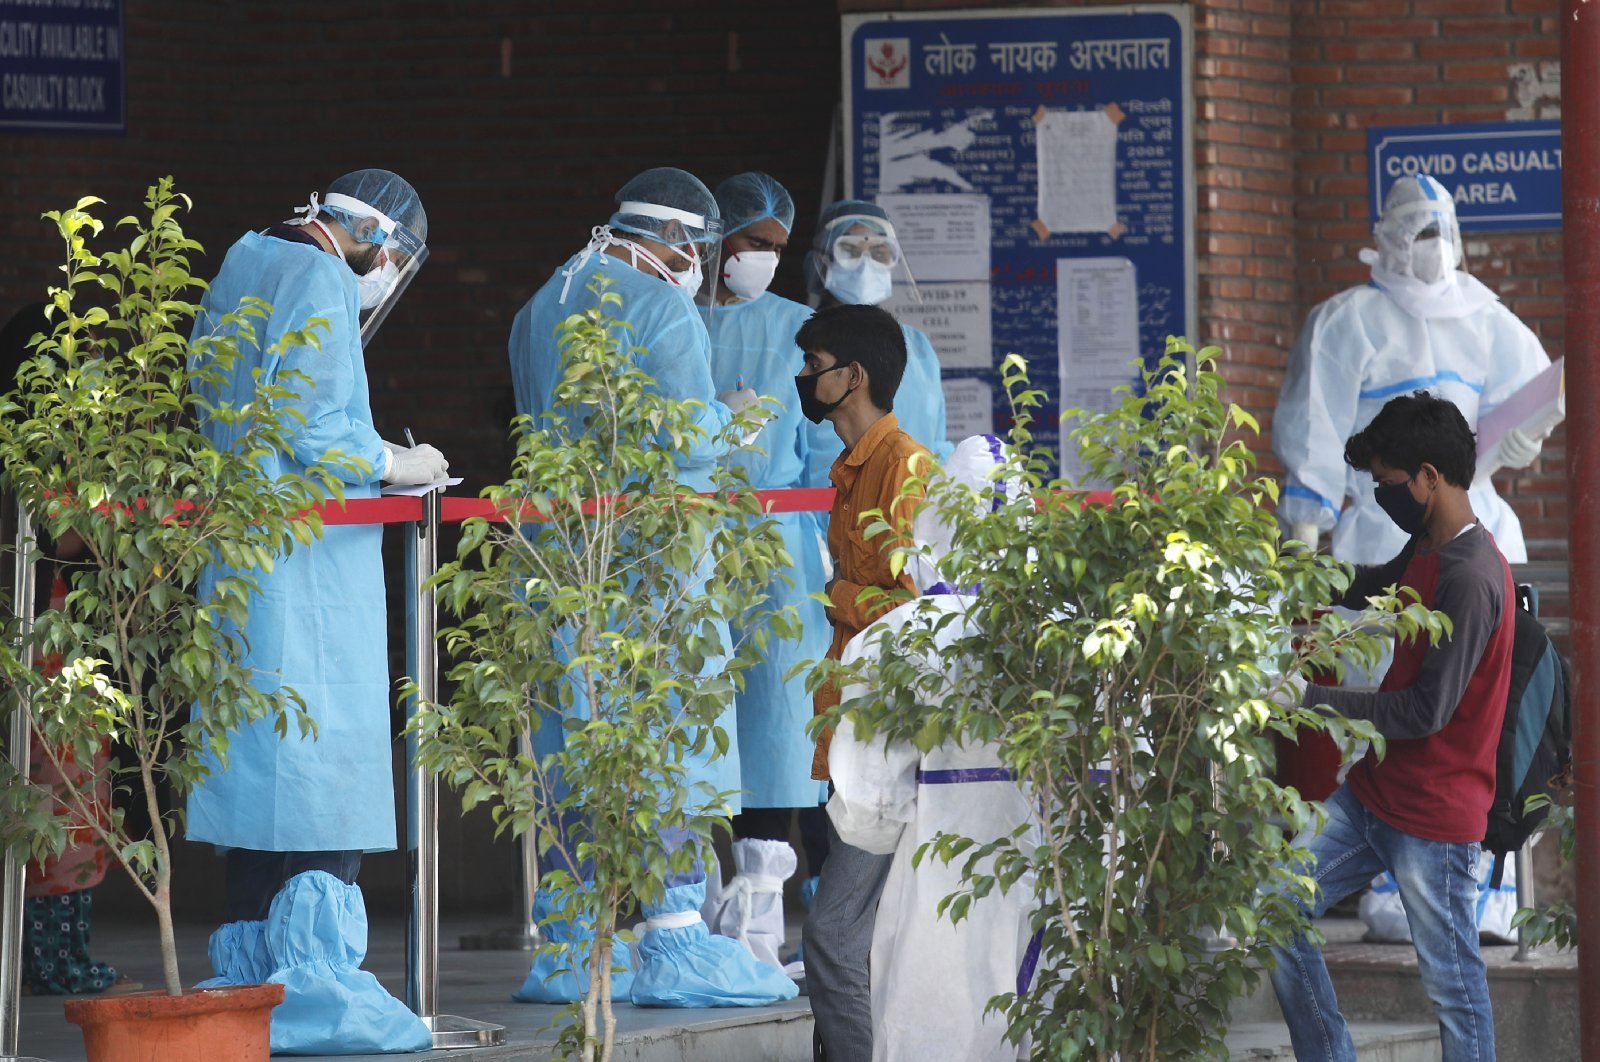 Doctors in personal protective suits check the papers of people whose relatives are admitted in a COVID-19 government designated hospital, in New Delhi, India Tuesday, June 23, 2020. (AP Photo)